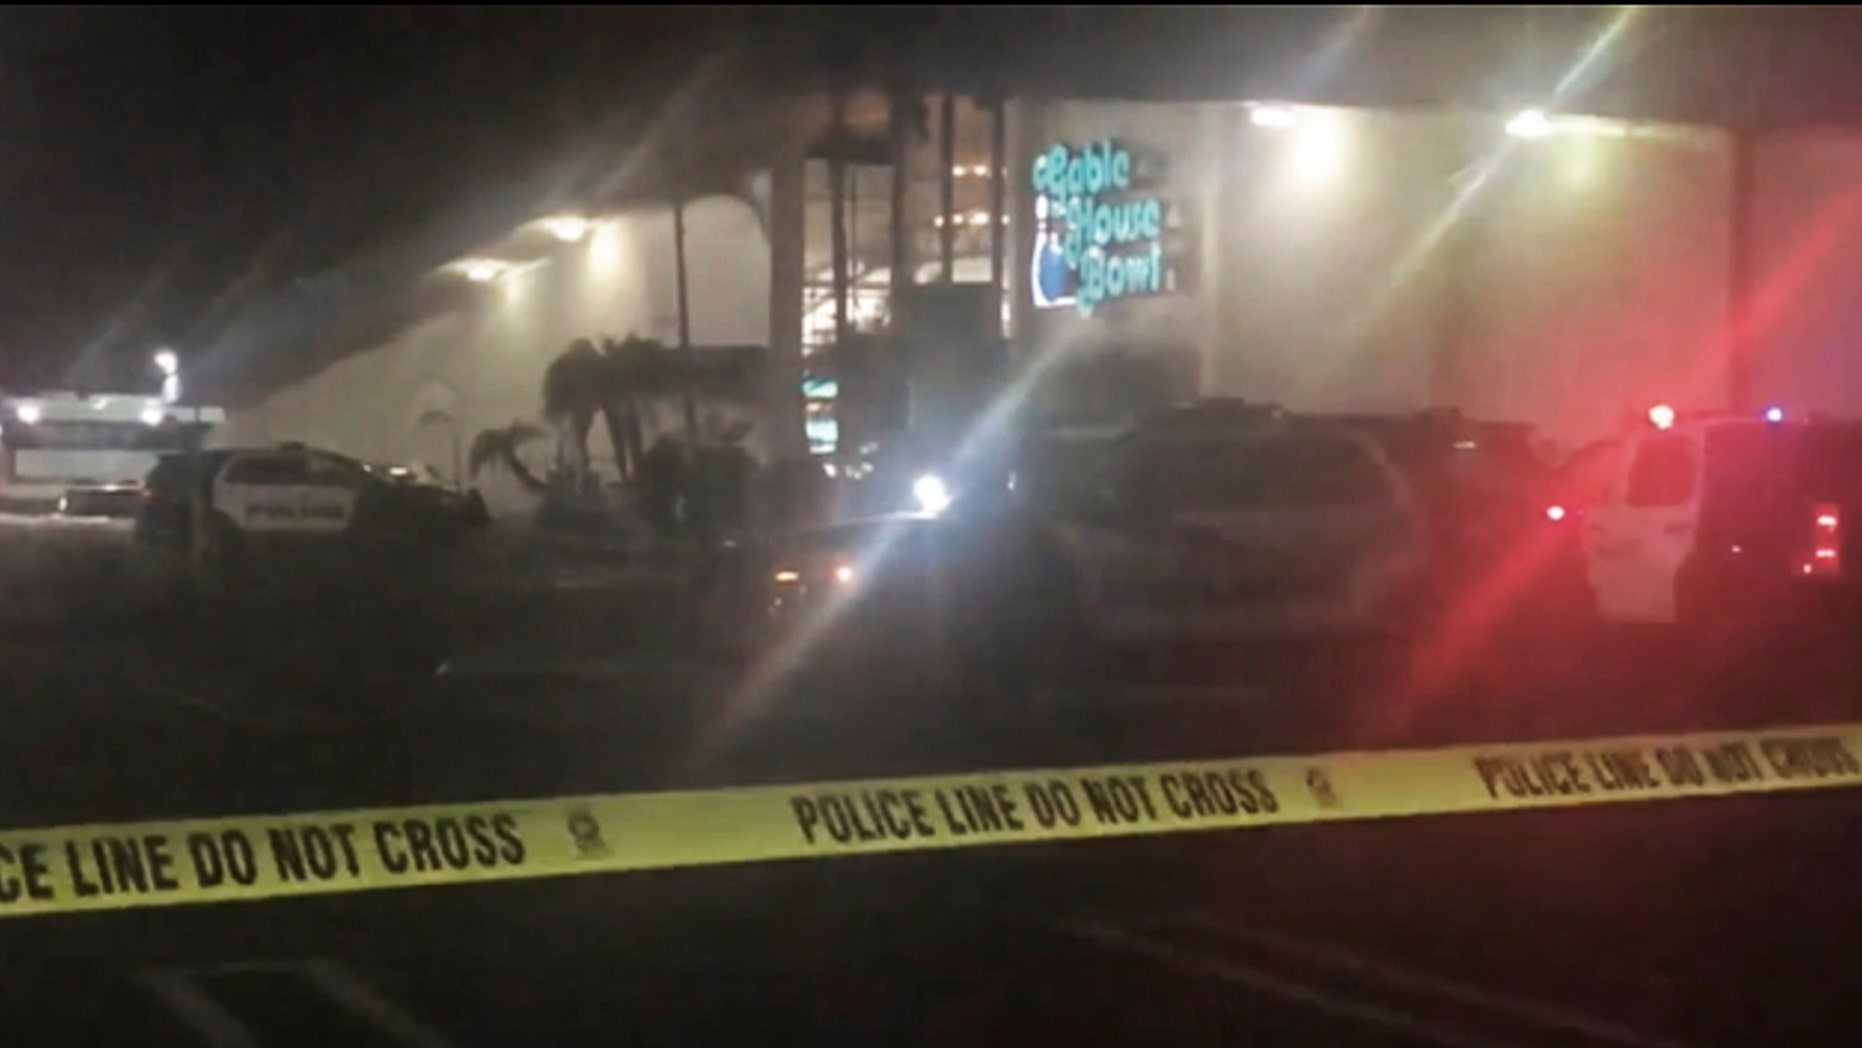 """Police rope off the scene of a shooting at a bowling alley in Torrance, Calif., early Saturday, Jan. 5, 2019.  The Torrance Police Department responded to calls of """"shots fired"""" at the Gable House Bowl shortly before midnight, Friday. Multiple victims were found with gunshot wounds inside the bowling ally, which is described on its website as a gaming venue that offers bowling, laser tag and a full arcade.  (AP Photo/APTN)"""